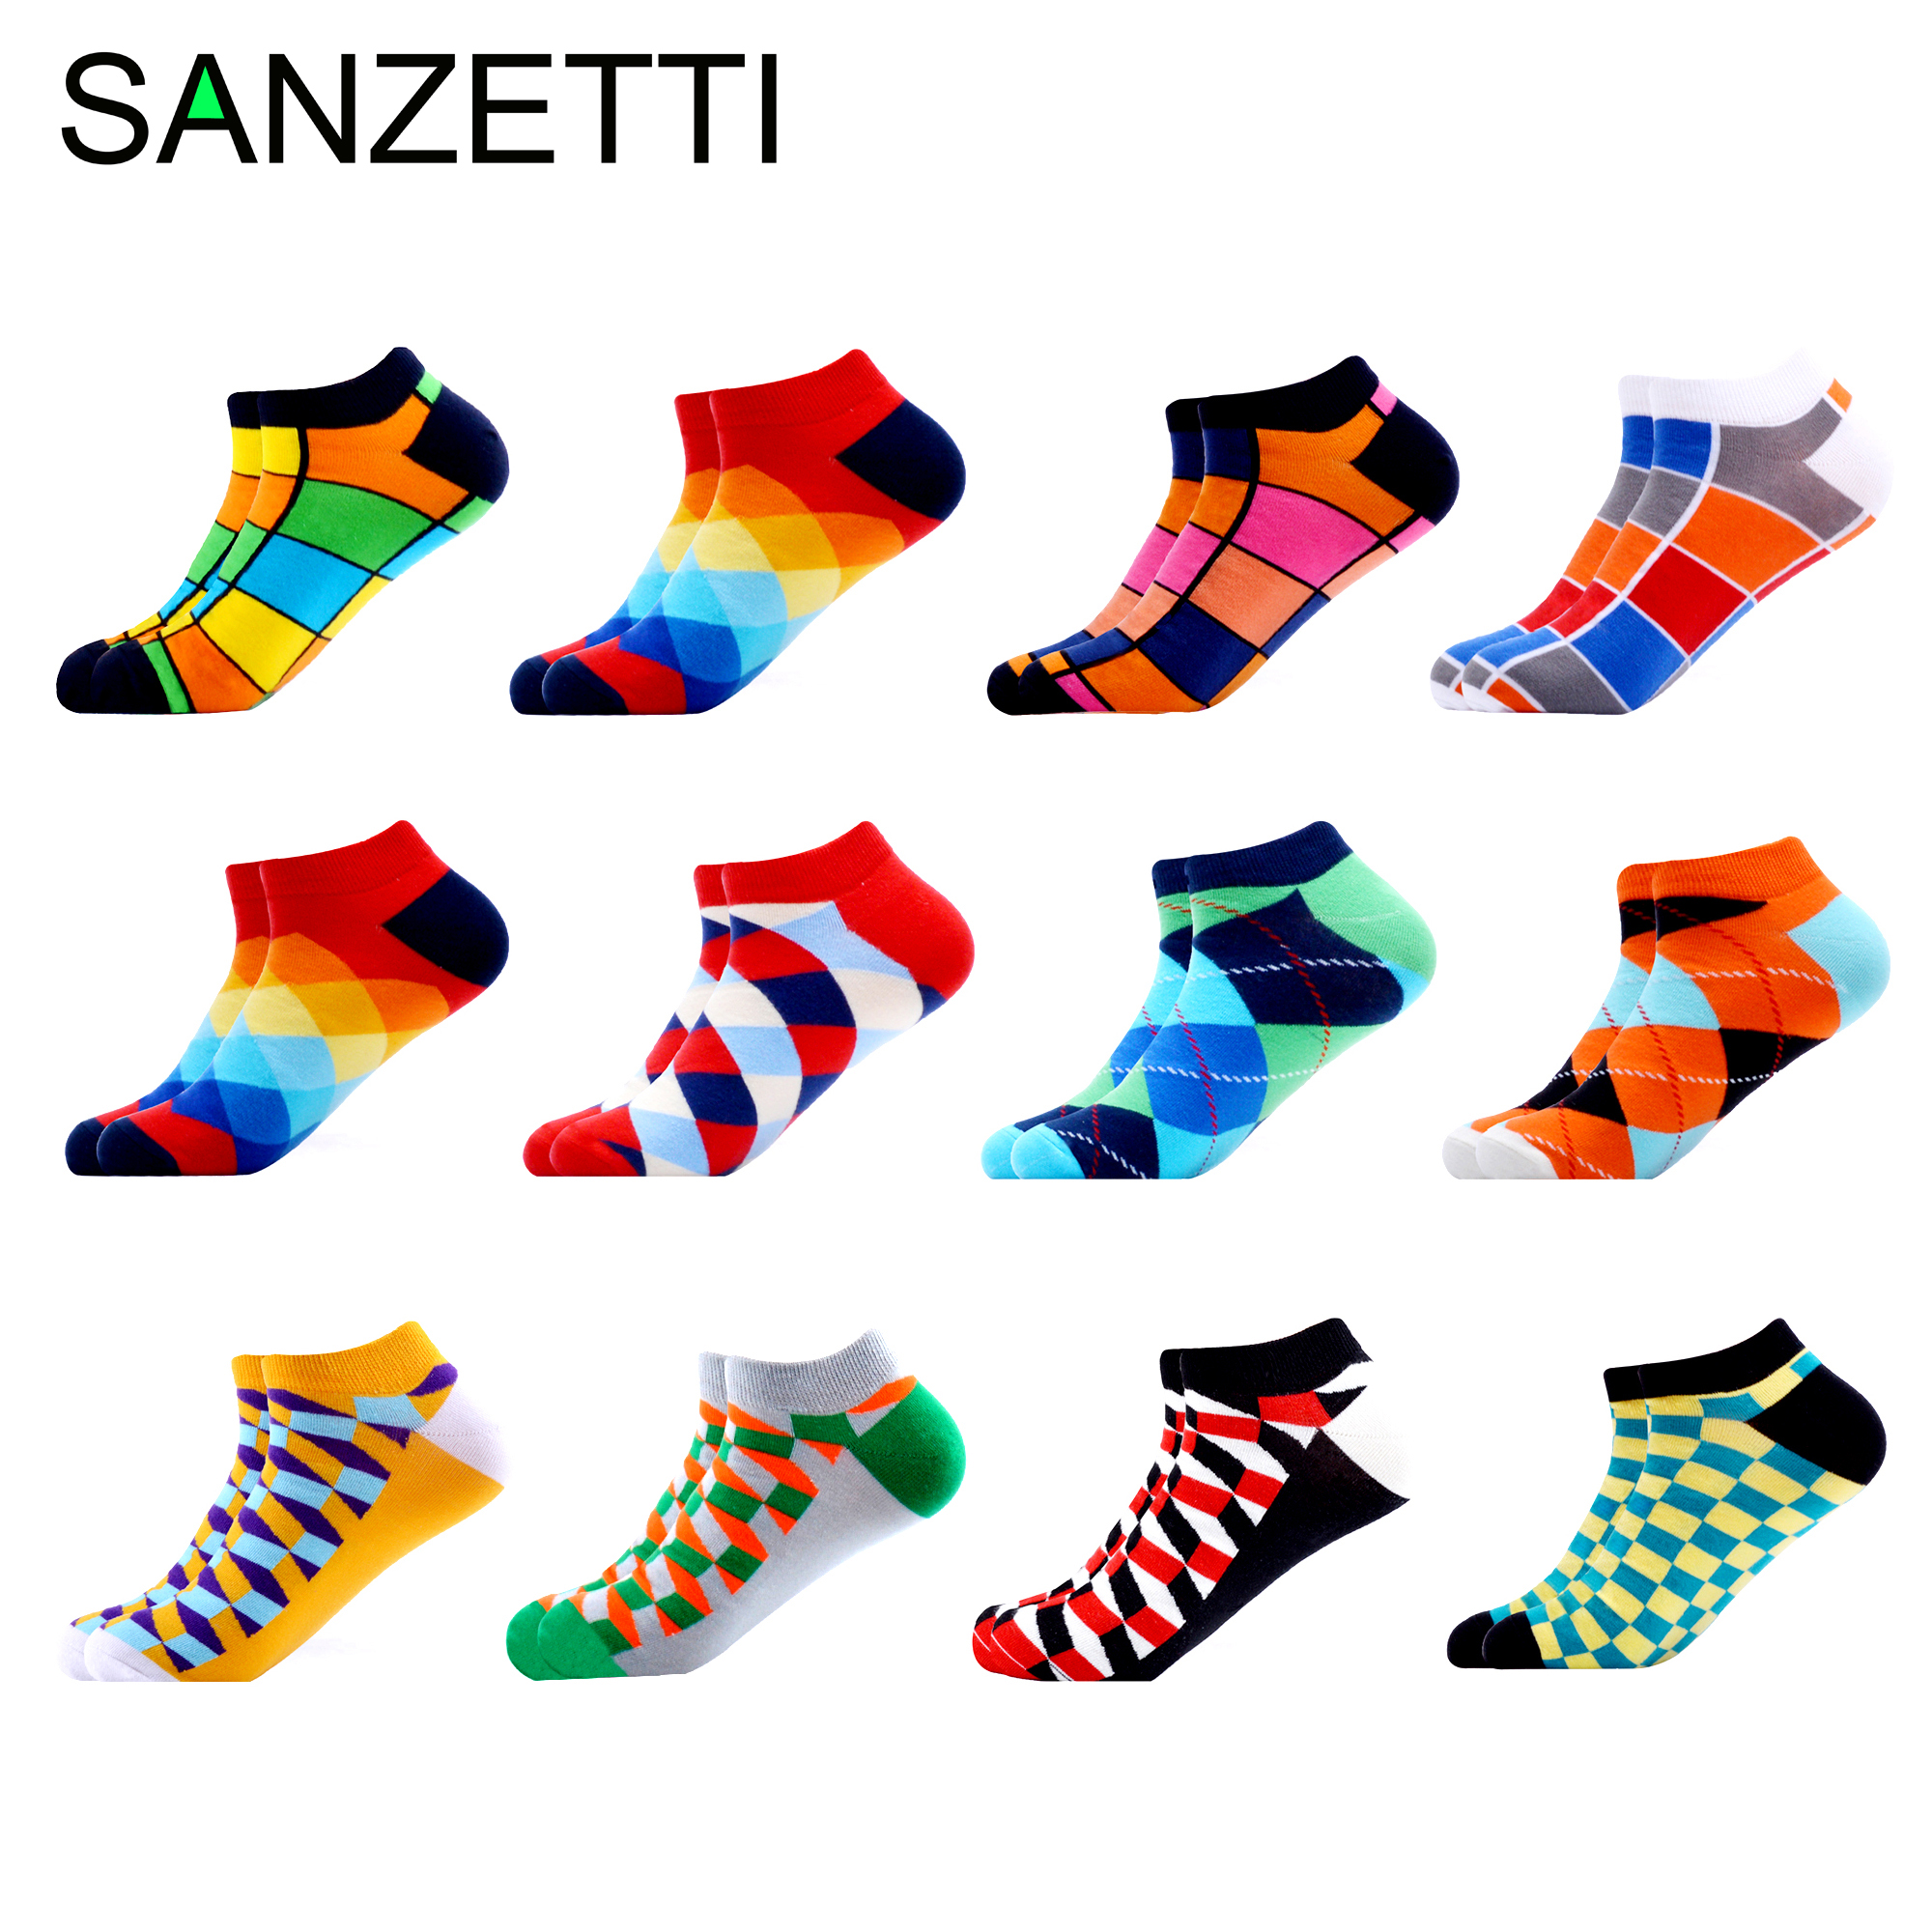 SANZETTI 12 Pairs/Lot Men's Ankle   Socks   Casual Novelty Colorful Summer Happy Combed Cotton Short   Socks   Plaid Dress Boat   Socks